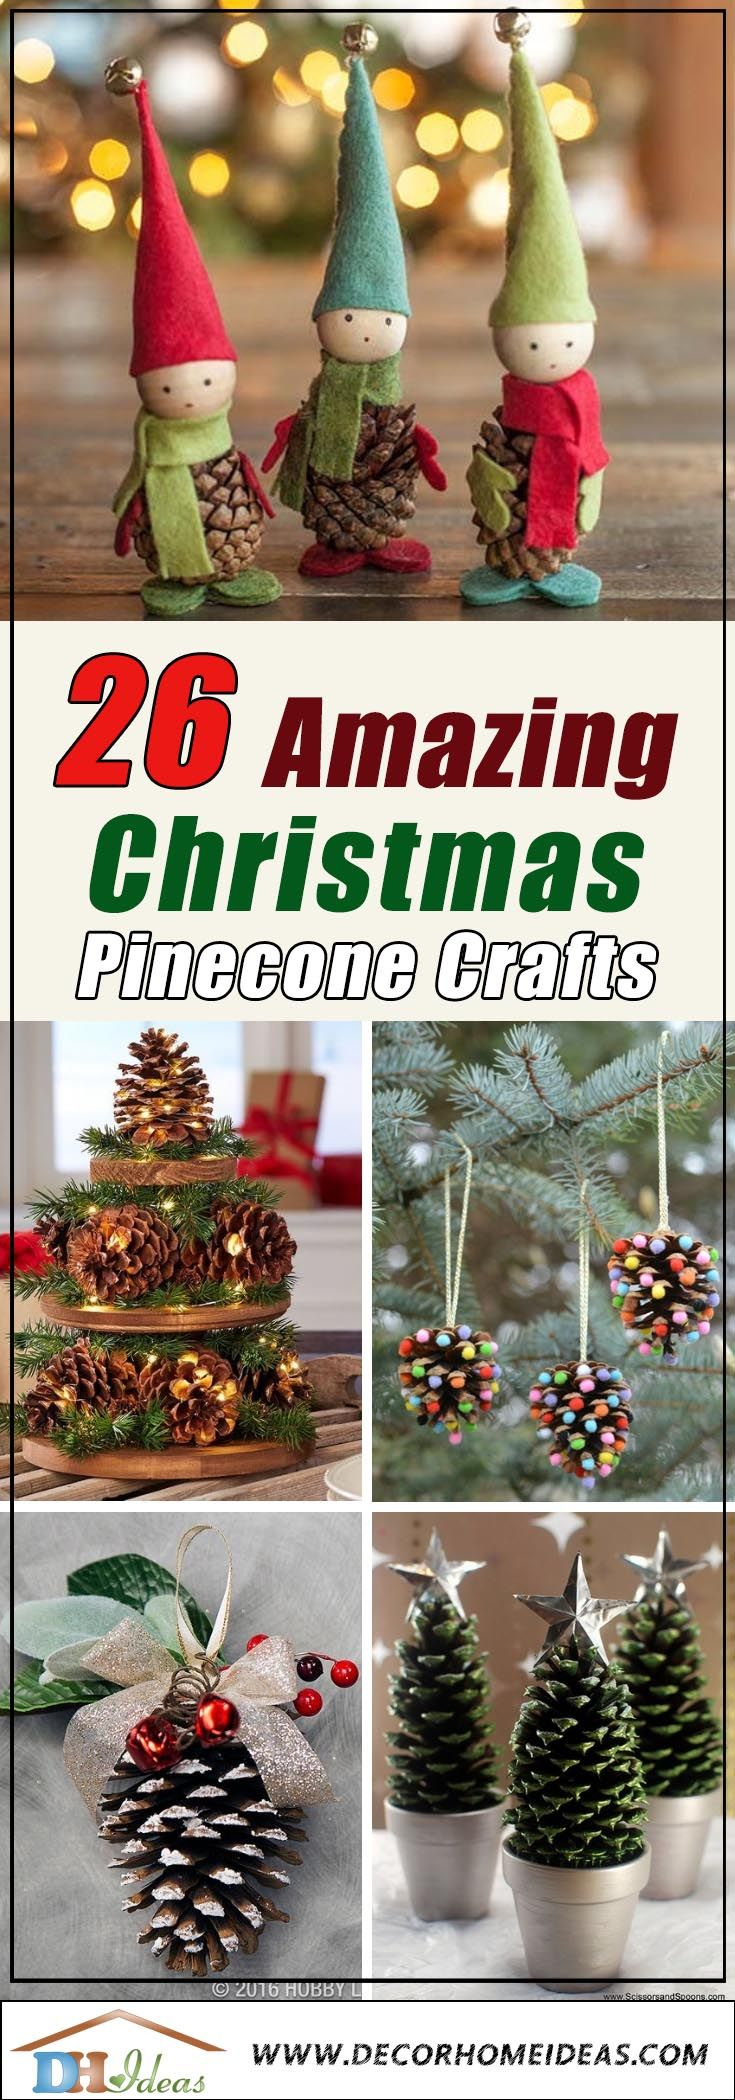 26 Diy Christmas Pine Cone Crafts To Add Extra Charm To Holidays Pinecone Crafts Christmas Pine Cone Christmas Decorations Pine Cone Crafts